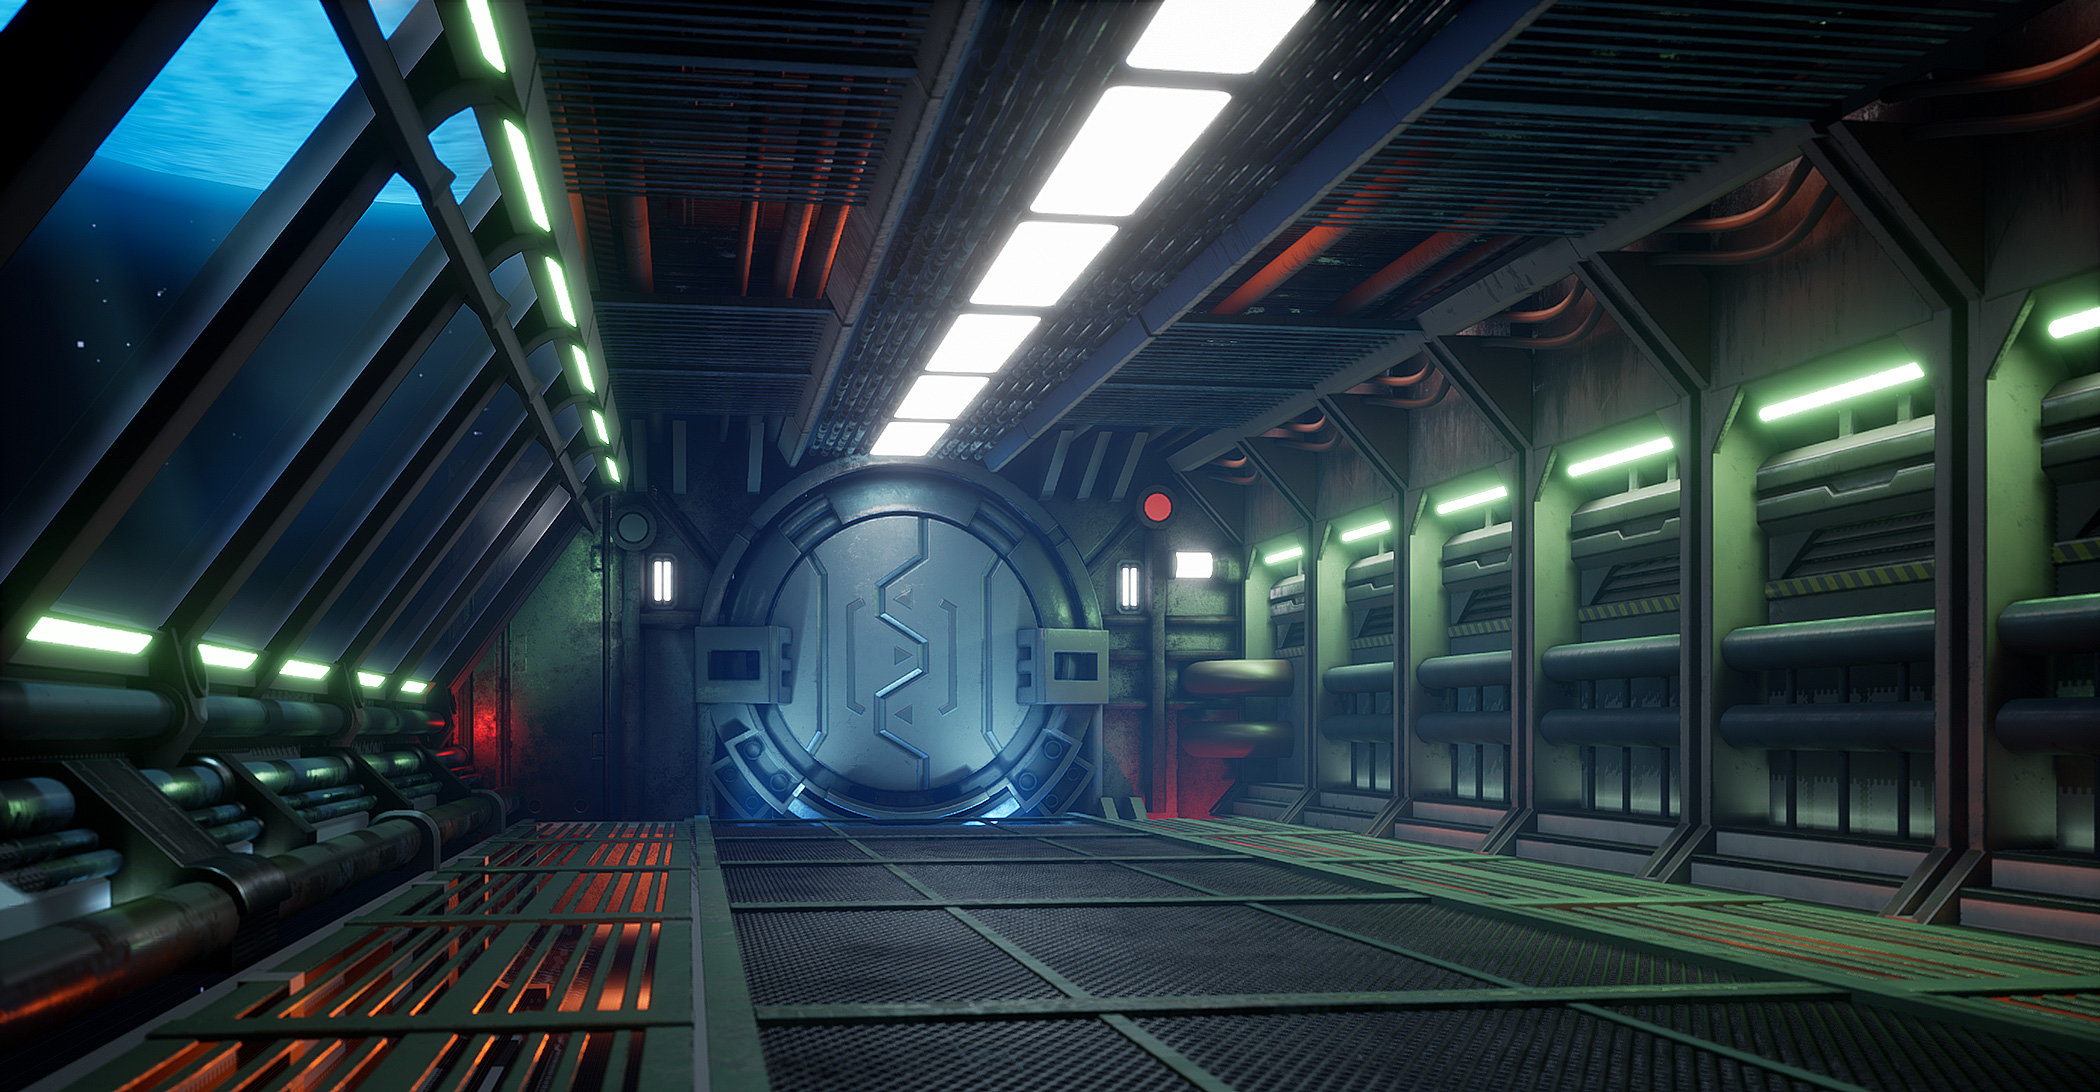 Finished] Sector 1 - a sci-fi passage in UE4 — polycount